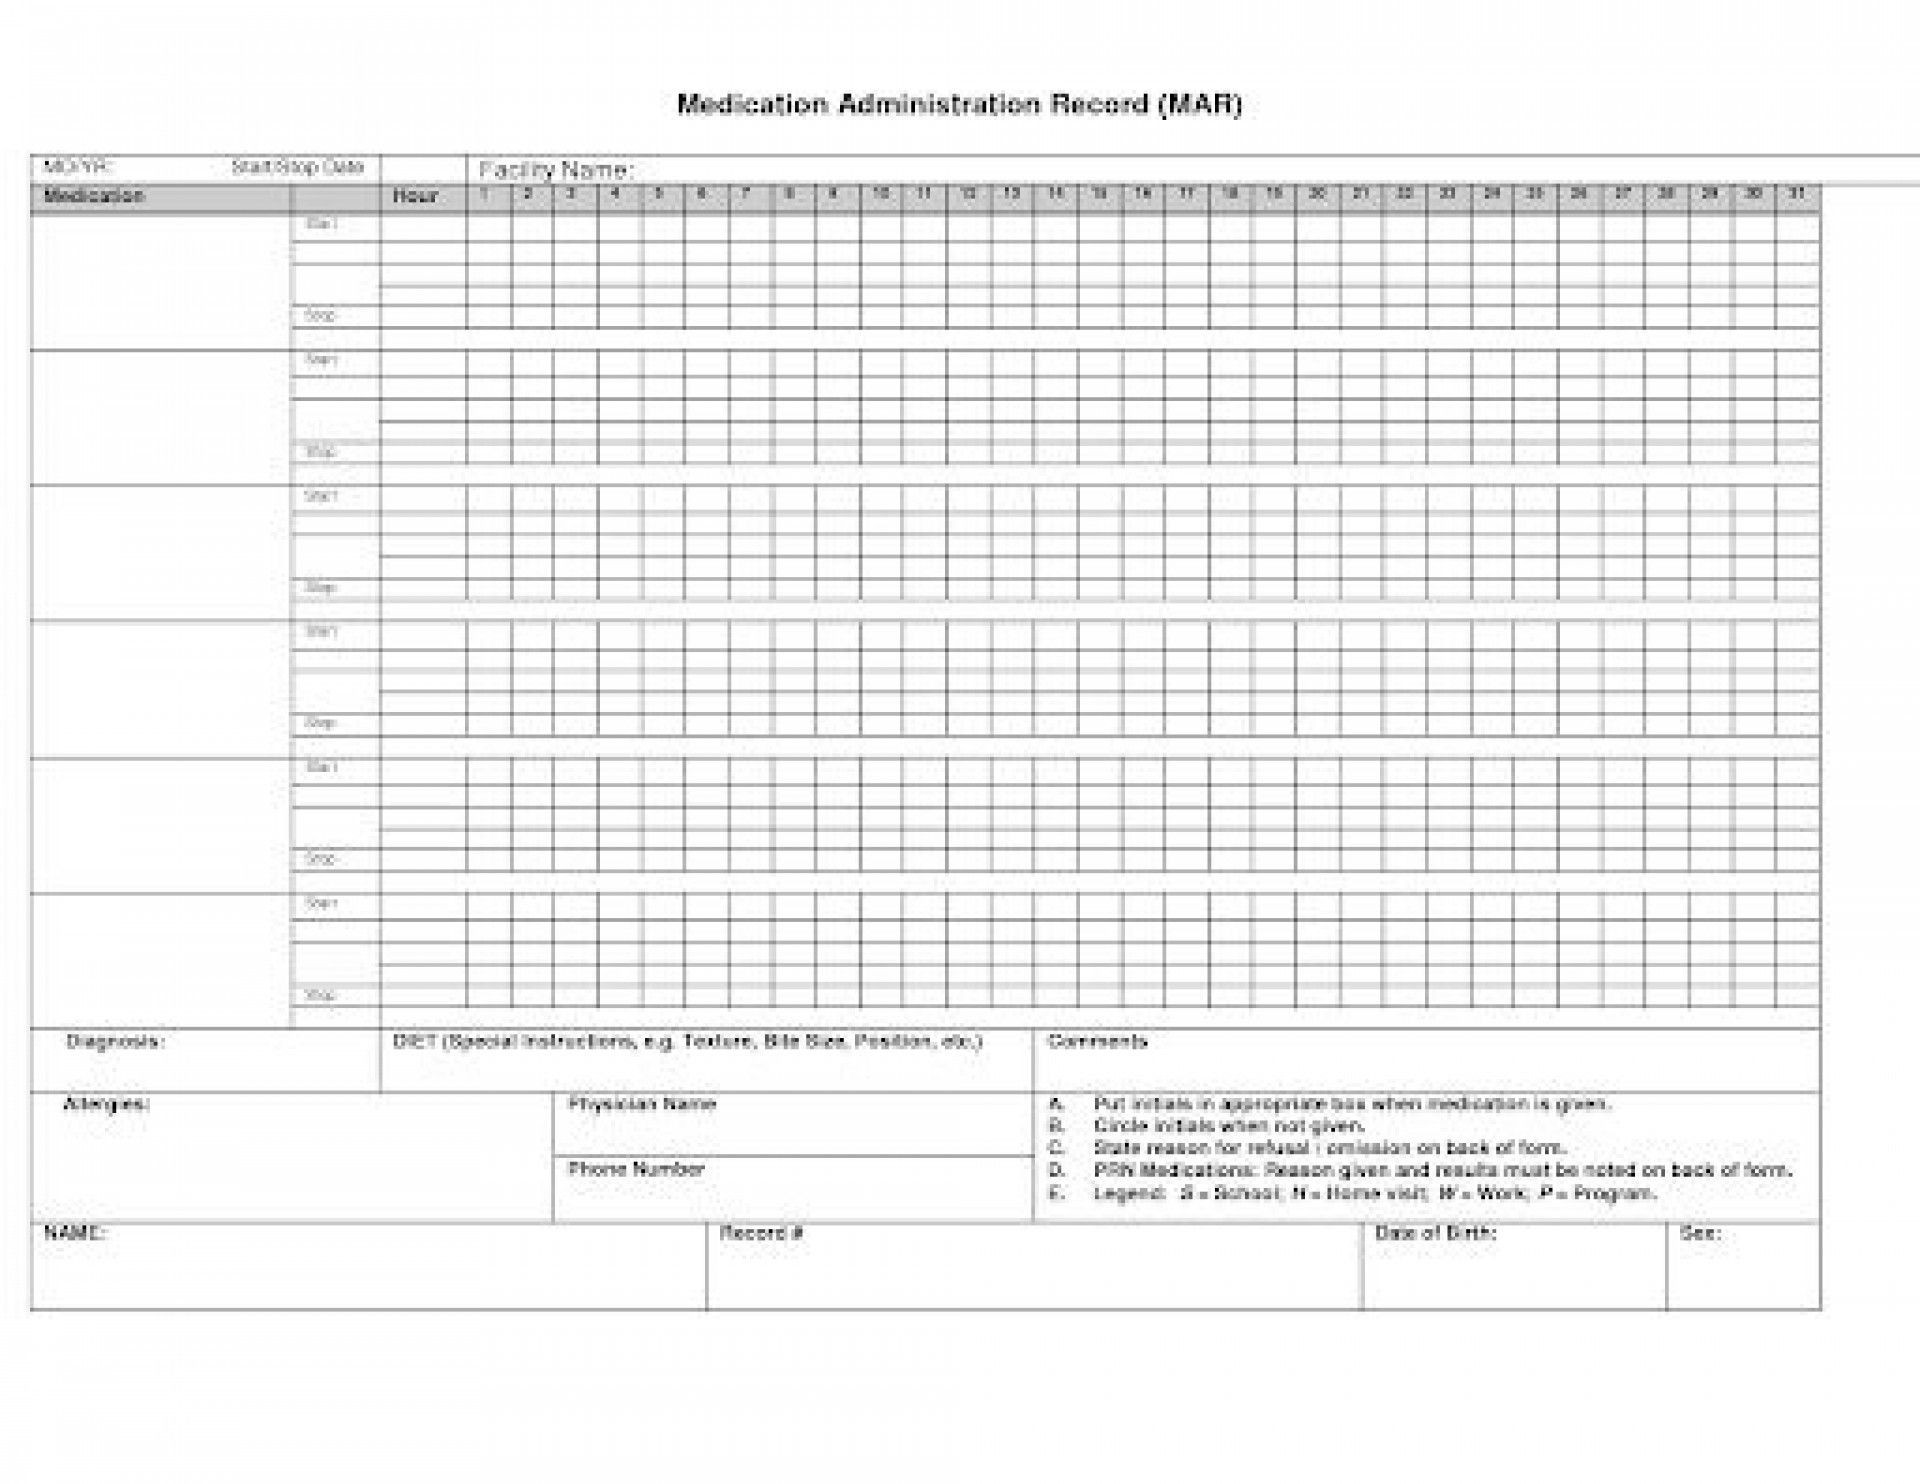 007 Simple Medication Administration Record Form Download High Def 1920